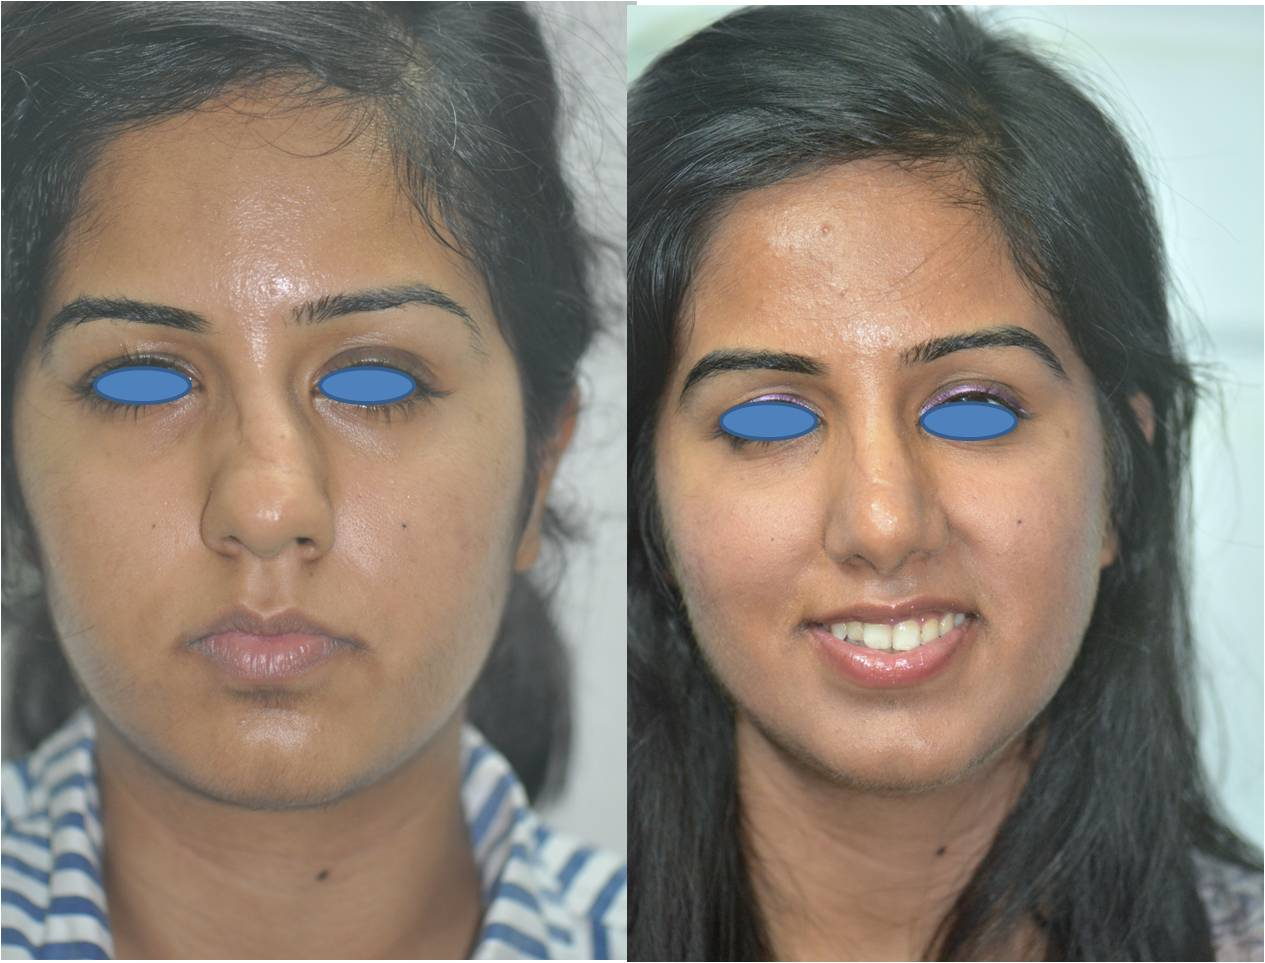 How much does Rhinoplasty cost? Can I have a cheap Rhinoplasty? yes